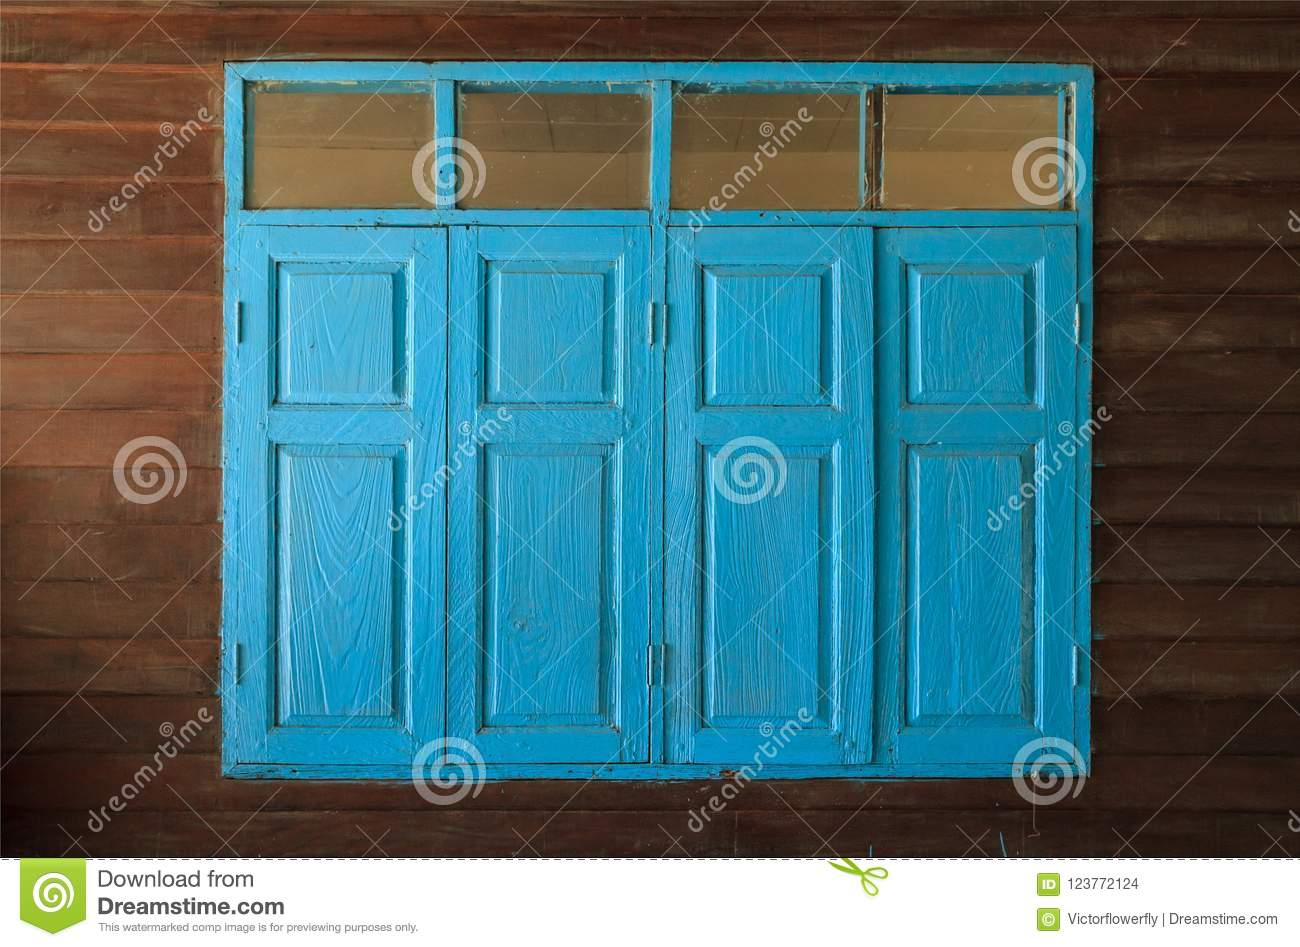 Elegant Light Blue Painted Vintage Retro Wooden Windows And Panes, Home Interior  Architectural Design Against Plain Tropical Dark Brown Textured Wood Panel  Board ...